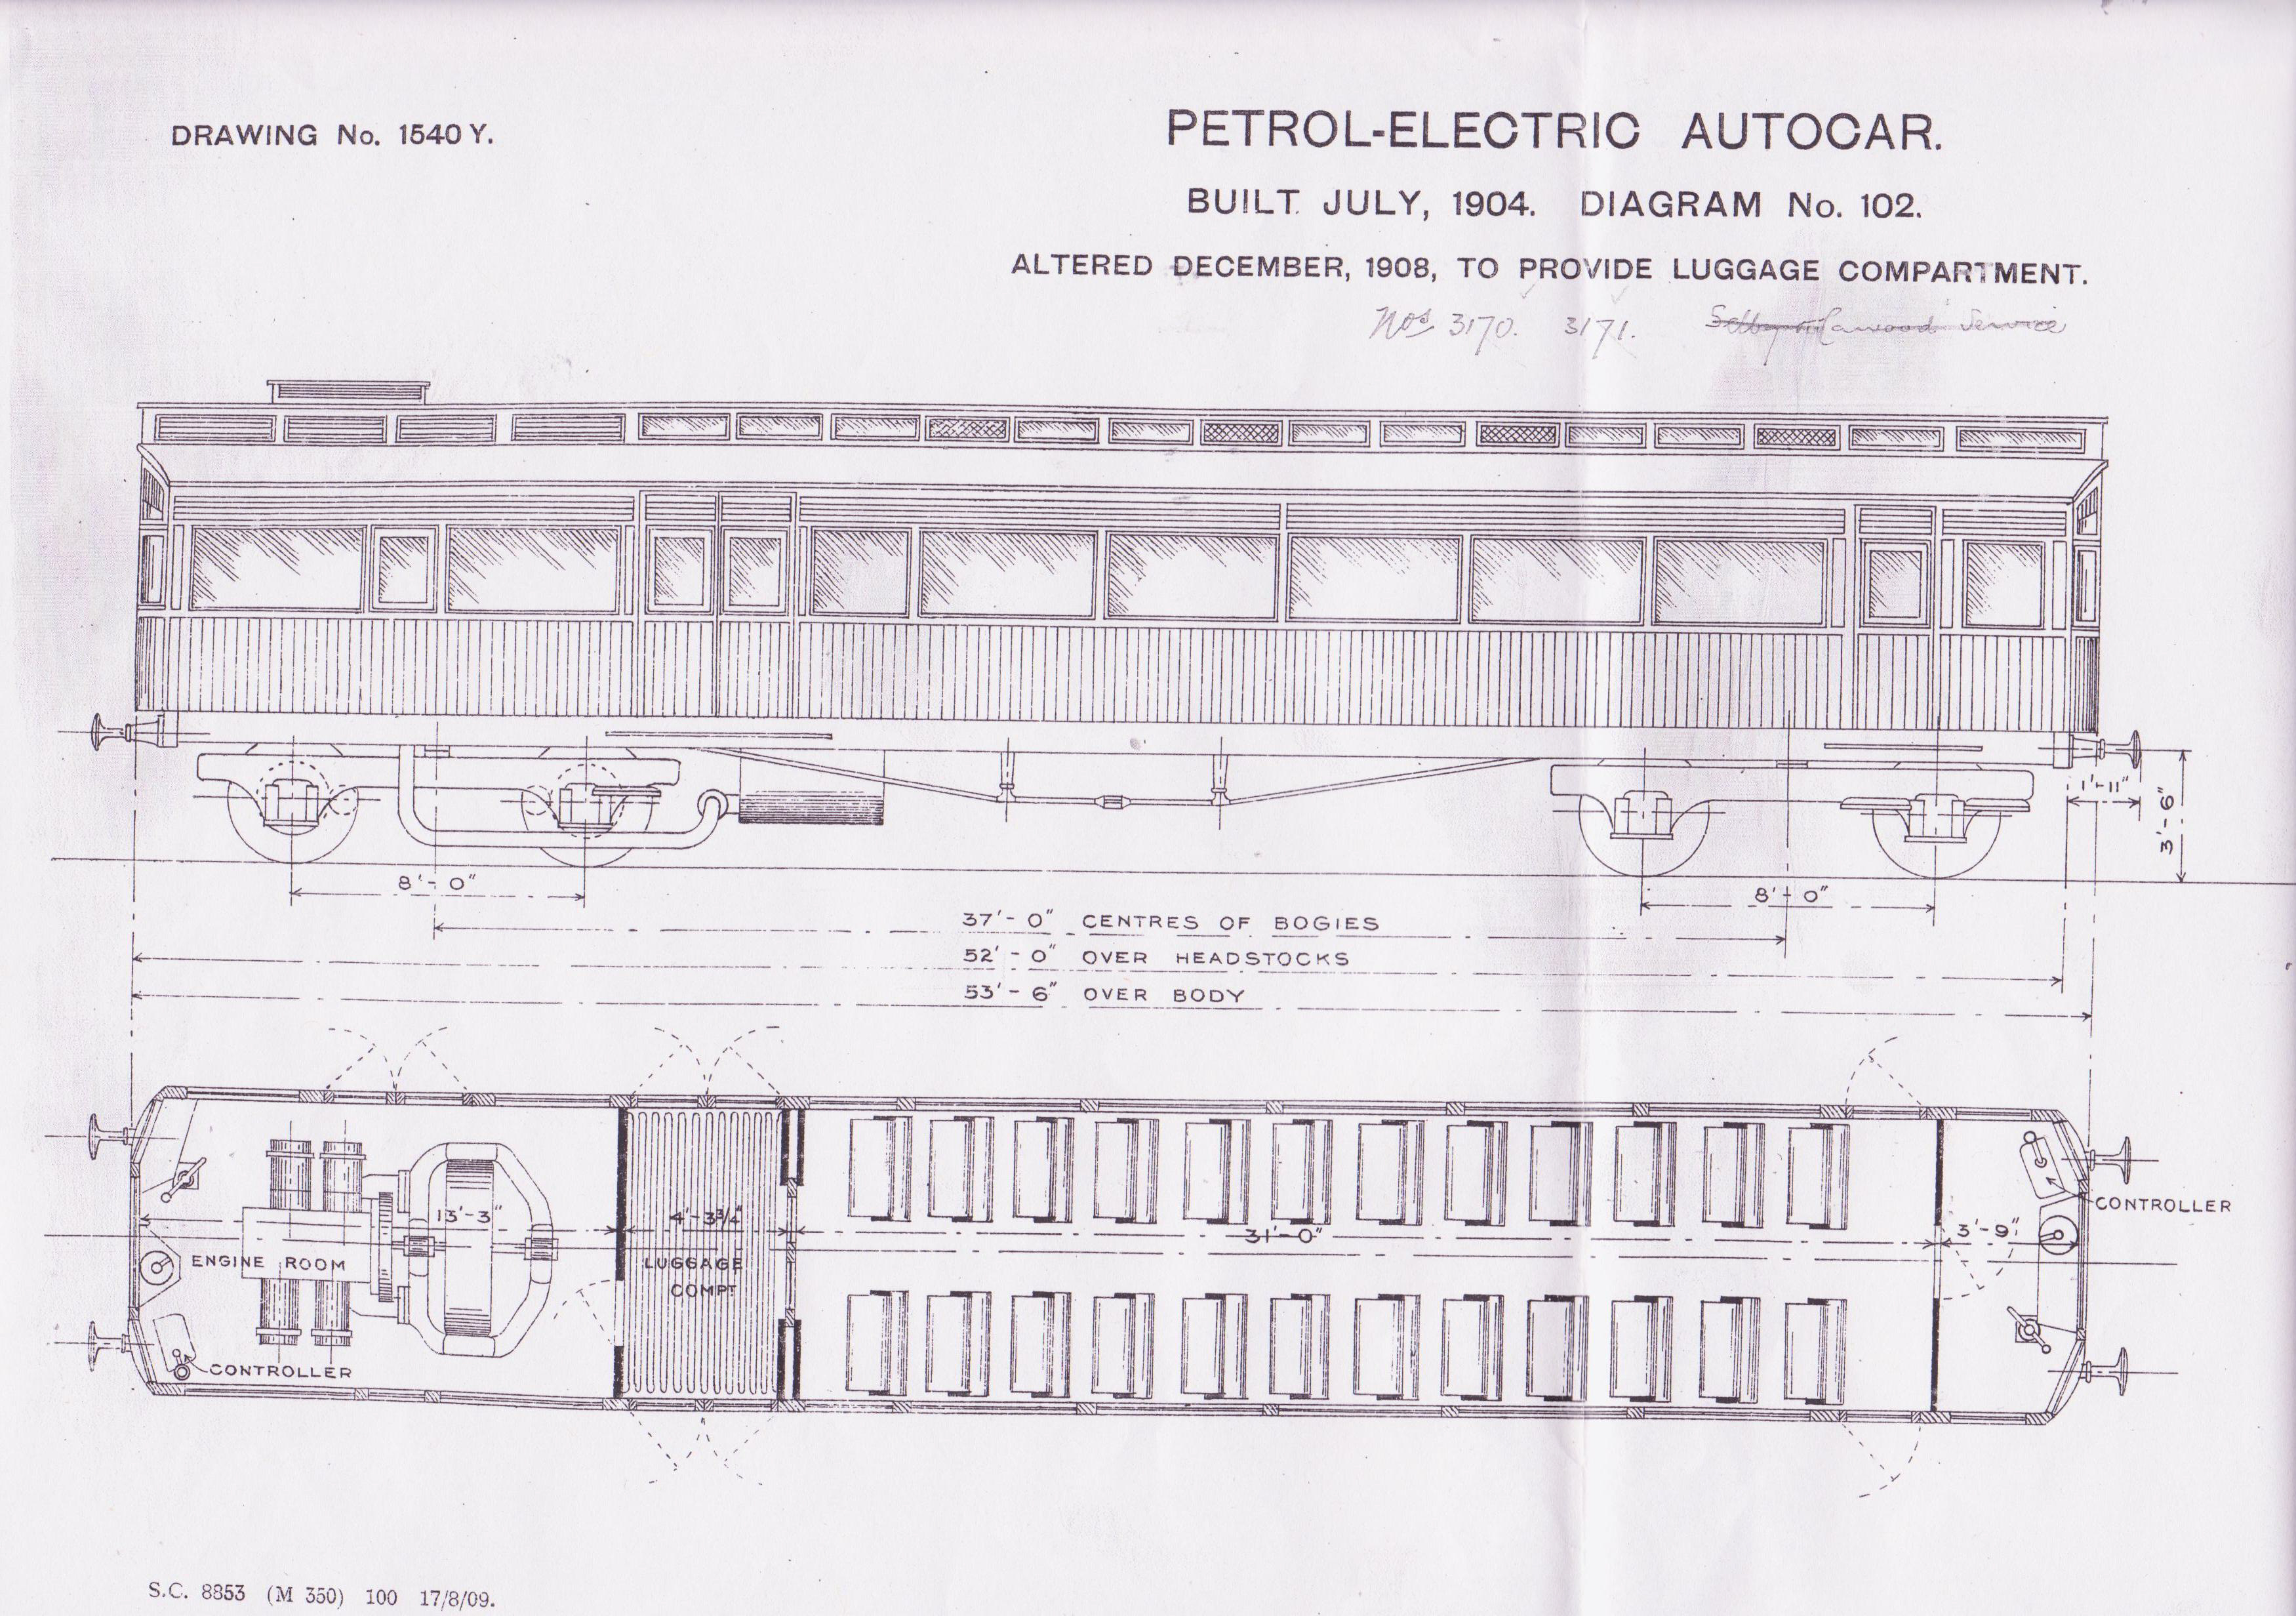 Lner Encyclopedia The Ner Petrol Electric Autocars